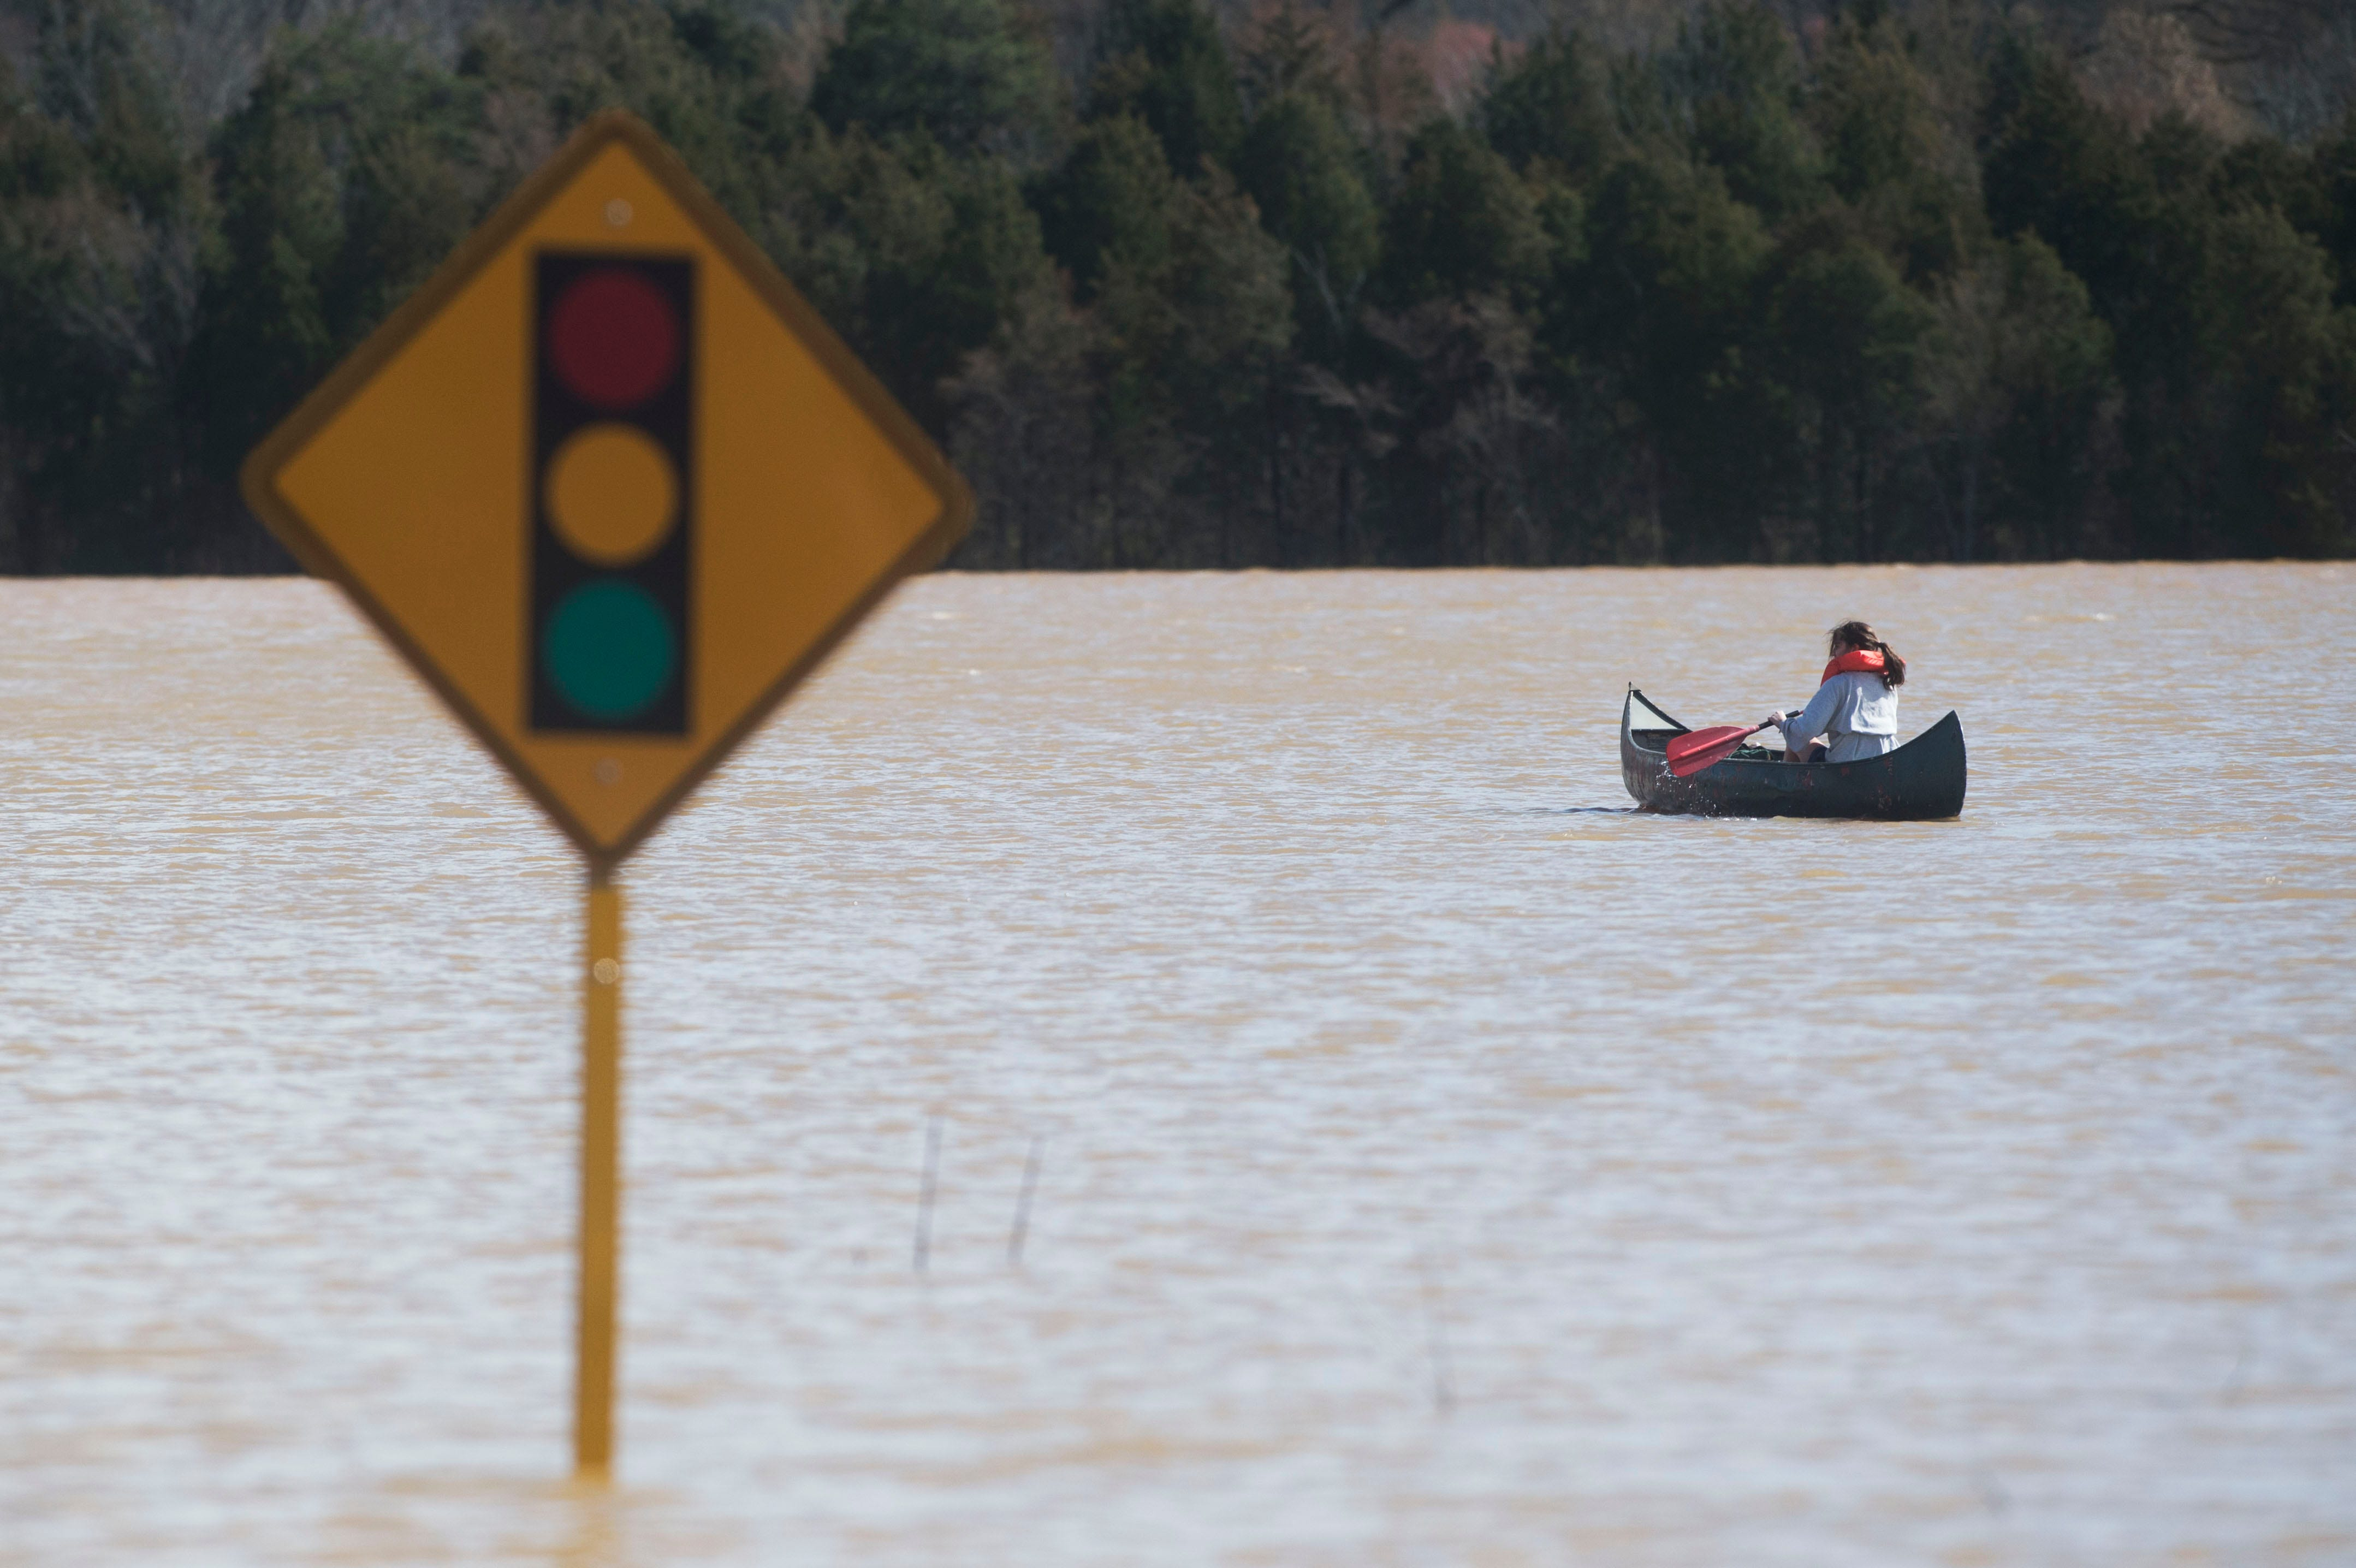 Julia Bryant, 18, of Knoxville, is seen canoeing in flood waters to her home which was surrounded by flood waters off Lantair Farm Lane, in Southwest Knox County Sunday, Feb. 24, 2019. Bryant canoed approximately three-quarters of a mile.